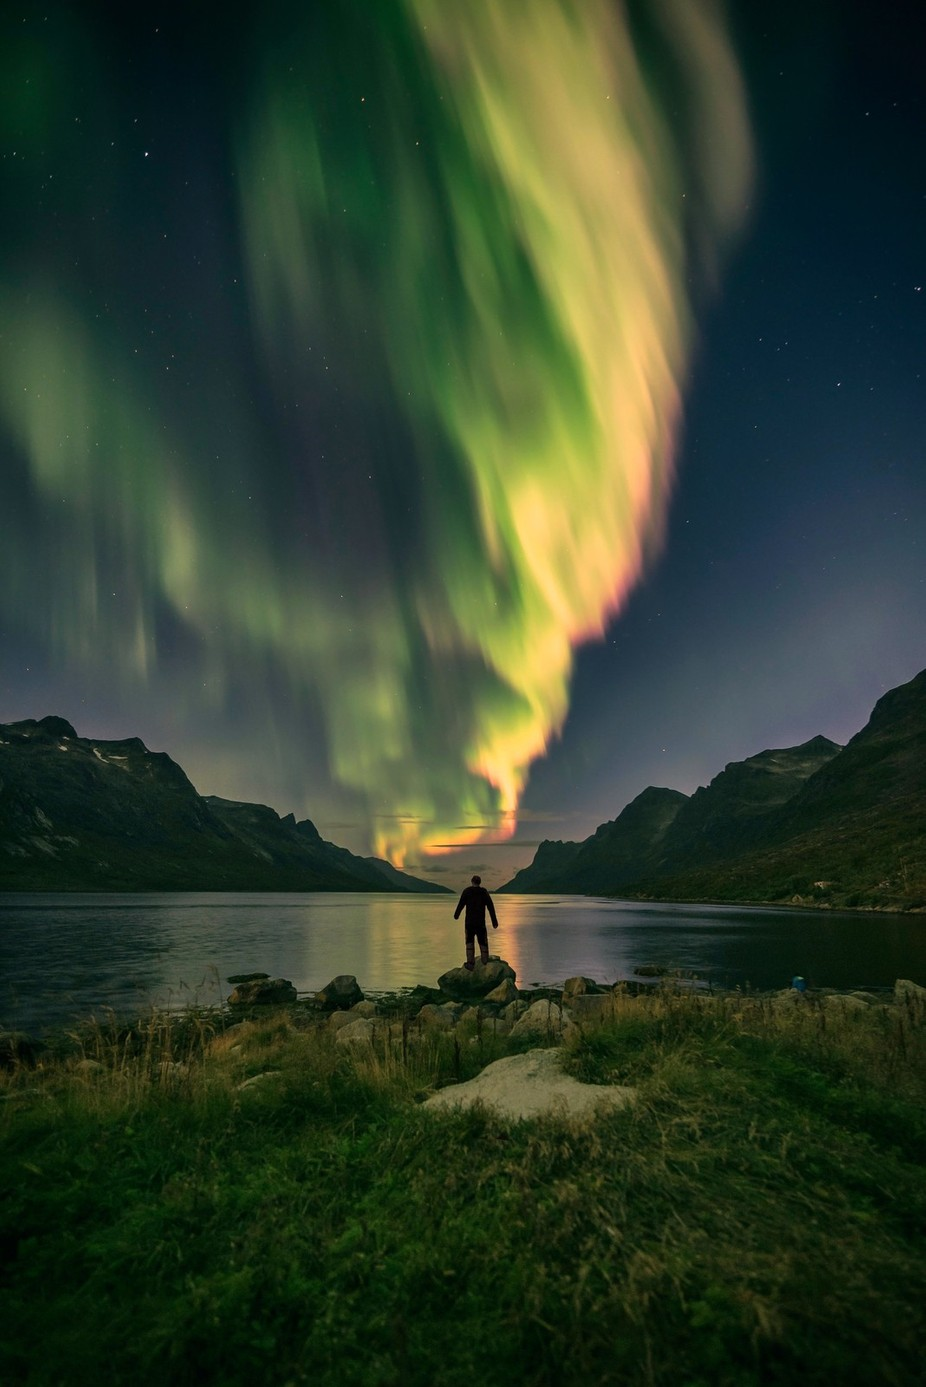 sky is on fire by Eventyr - Creative Travels Photo Contest